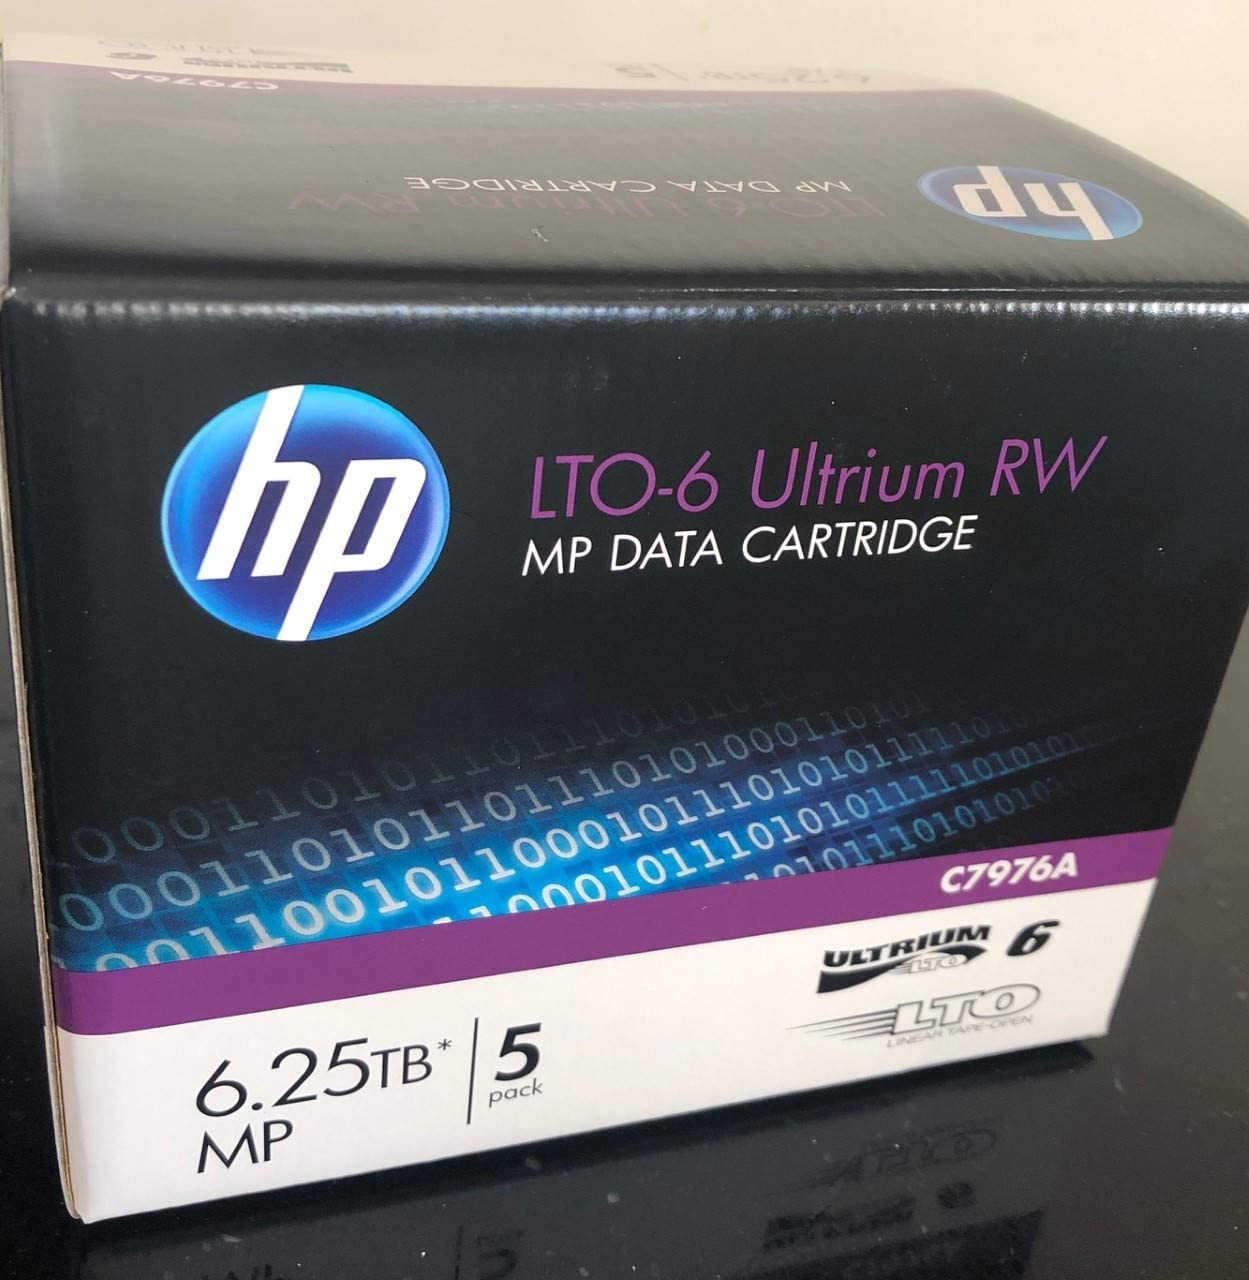 5 Pack HP C7976A LTO6 Data Tape 6.25TB (New)